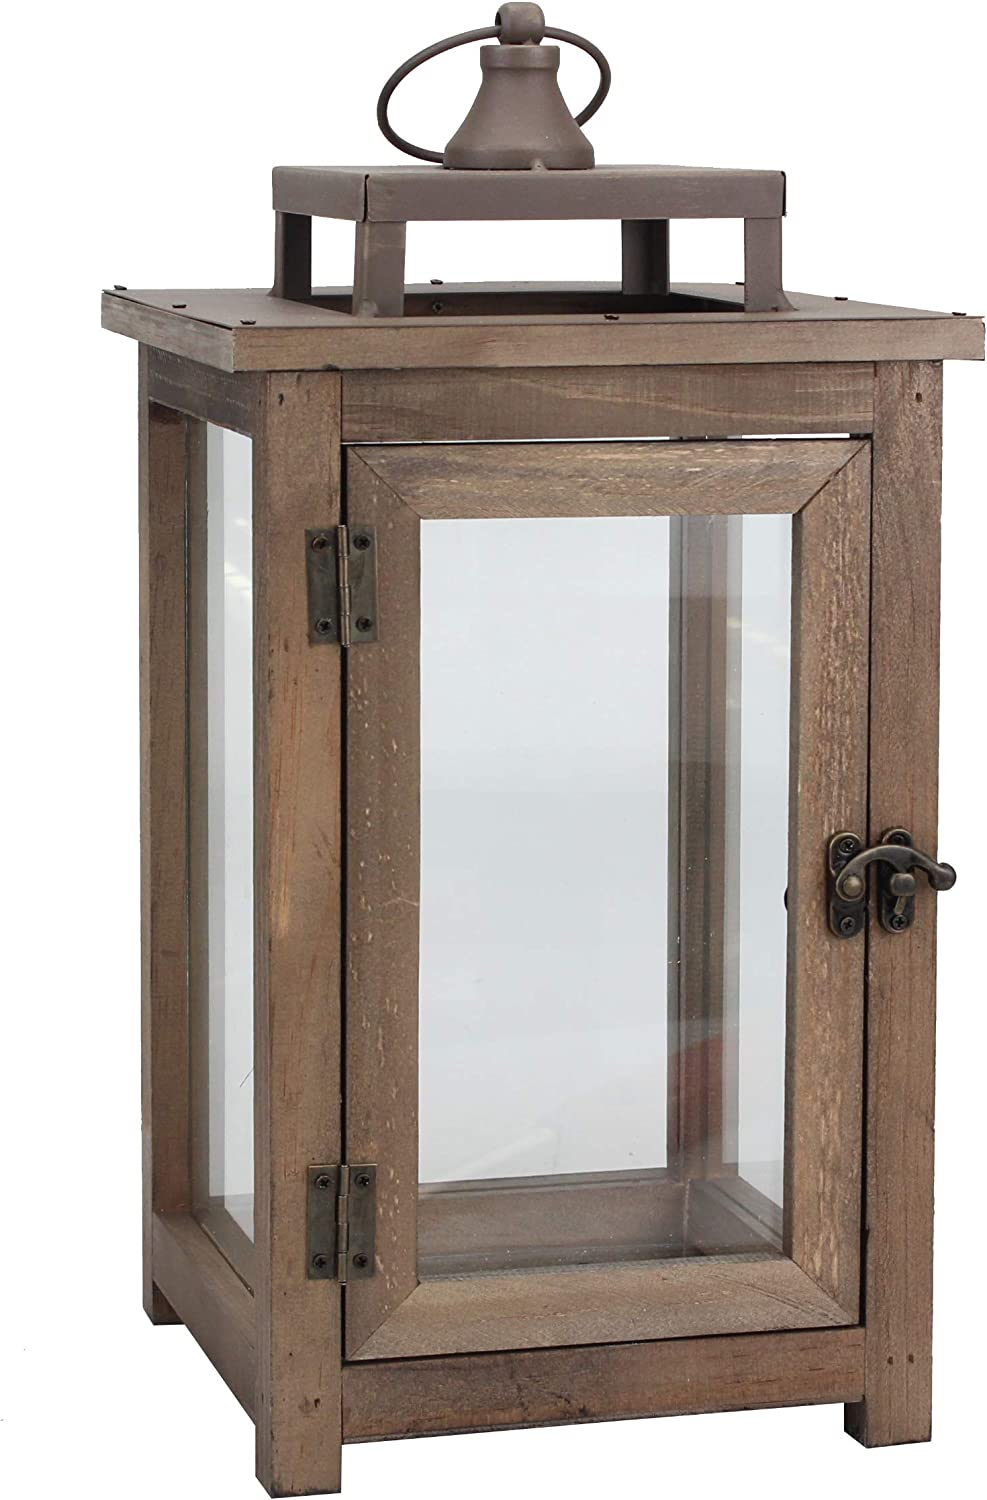 Stonebriar Decorative Wooden Candle Lantern, Use As Decoration for Birthday Parties, a Rustic Wedding Centerpiece, or Create a Relaxing Spa Setting, for Indoor or Outdoor Use, Large